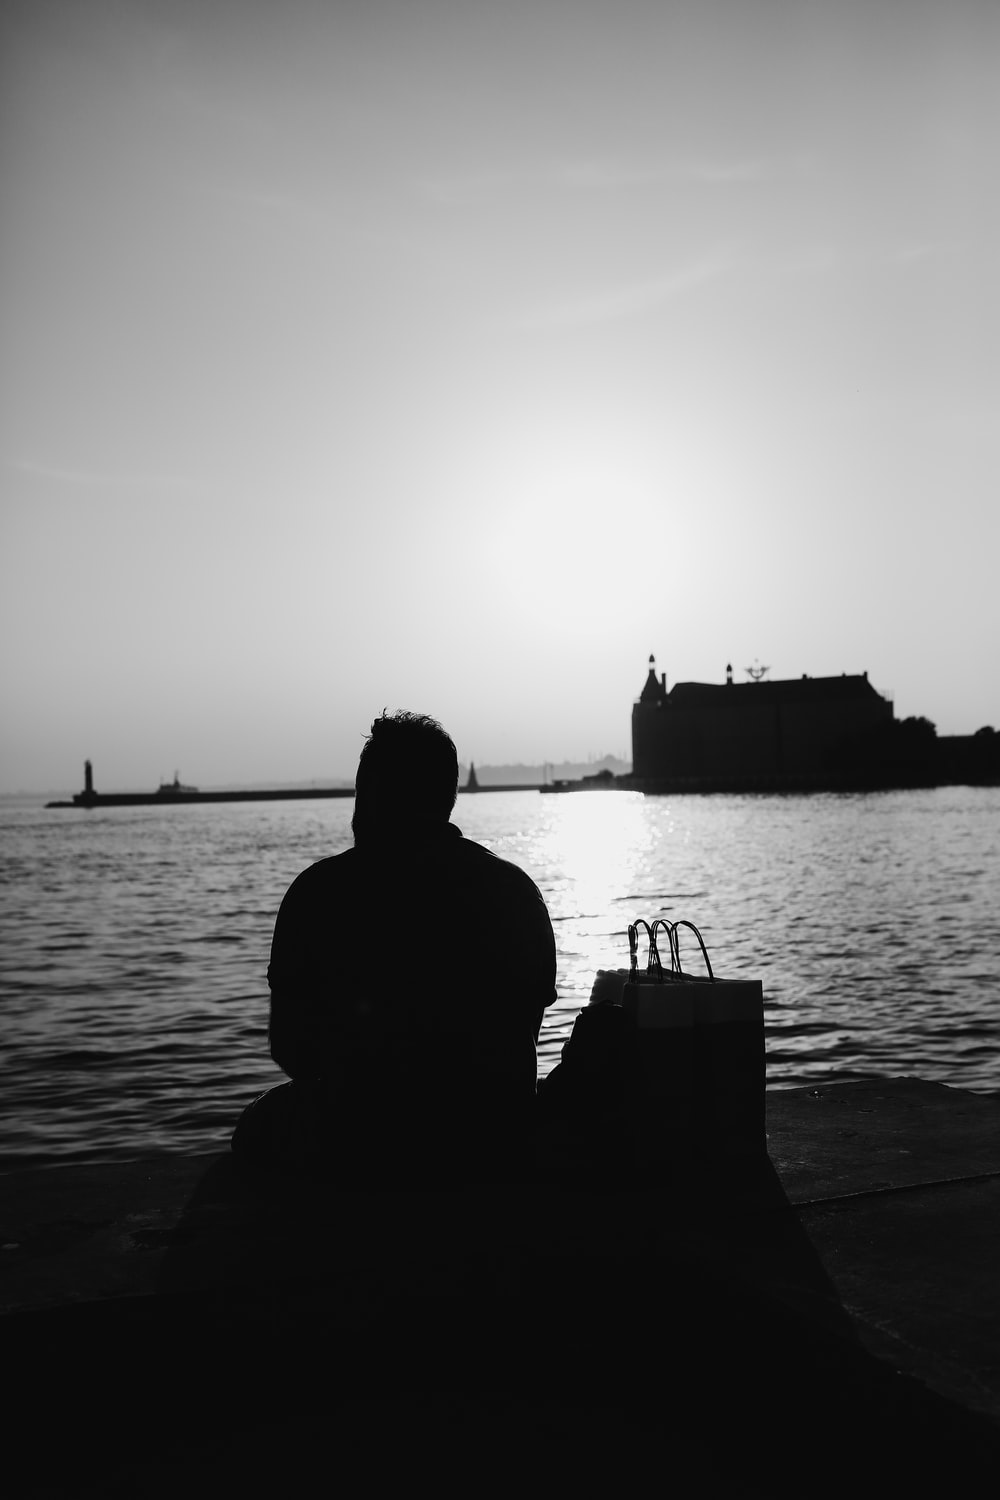 silhouette of woman sitting on chair near body of water during sunset